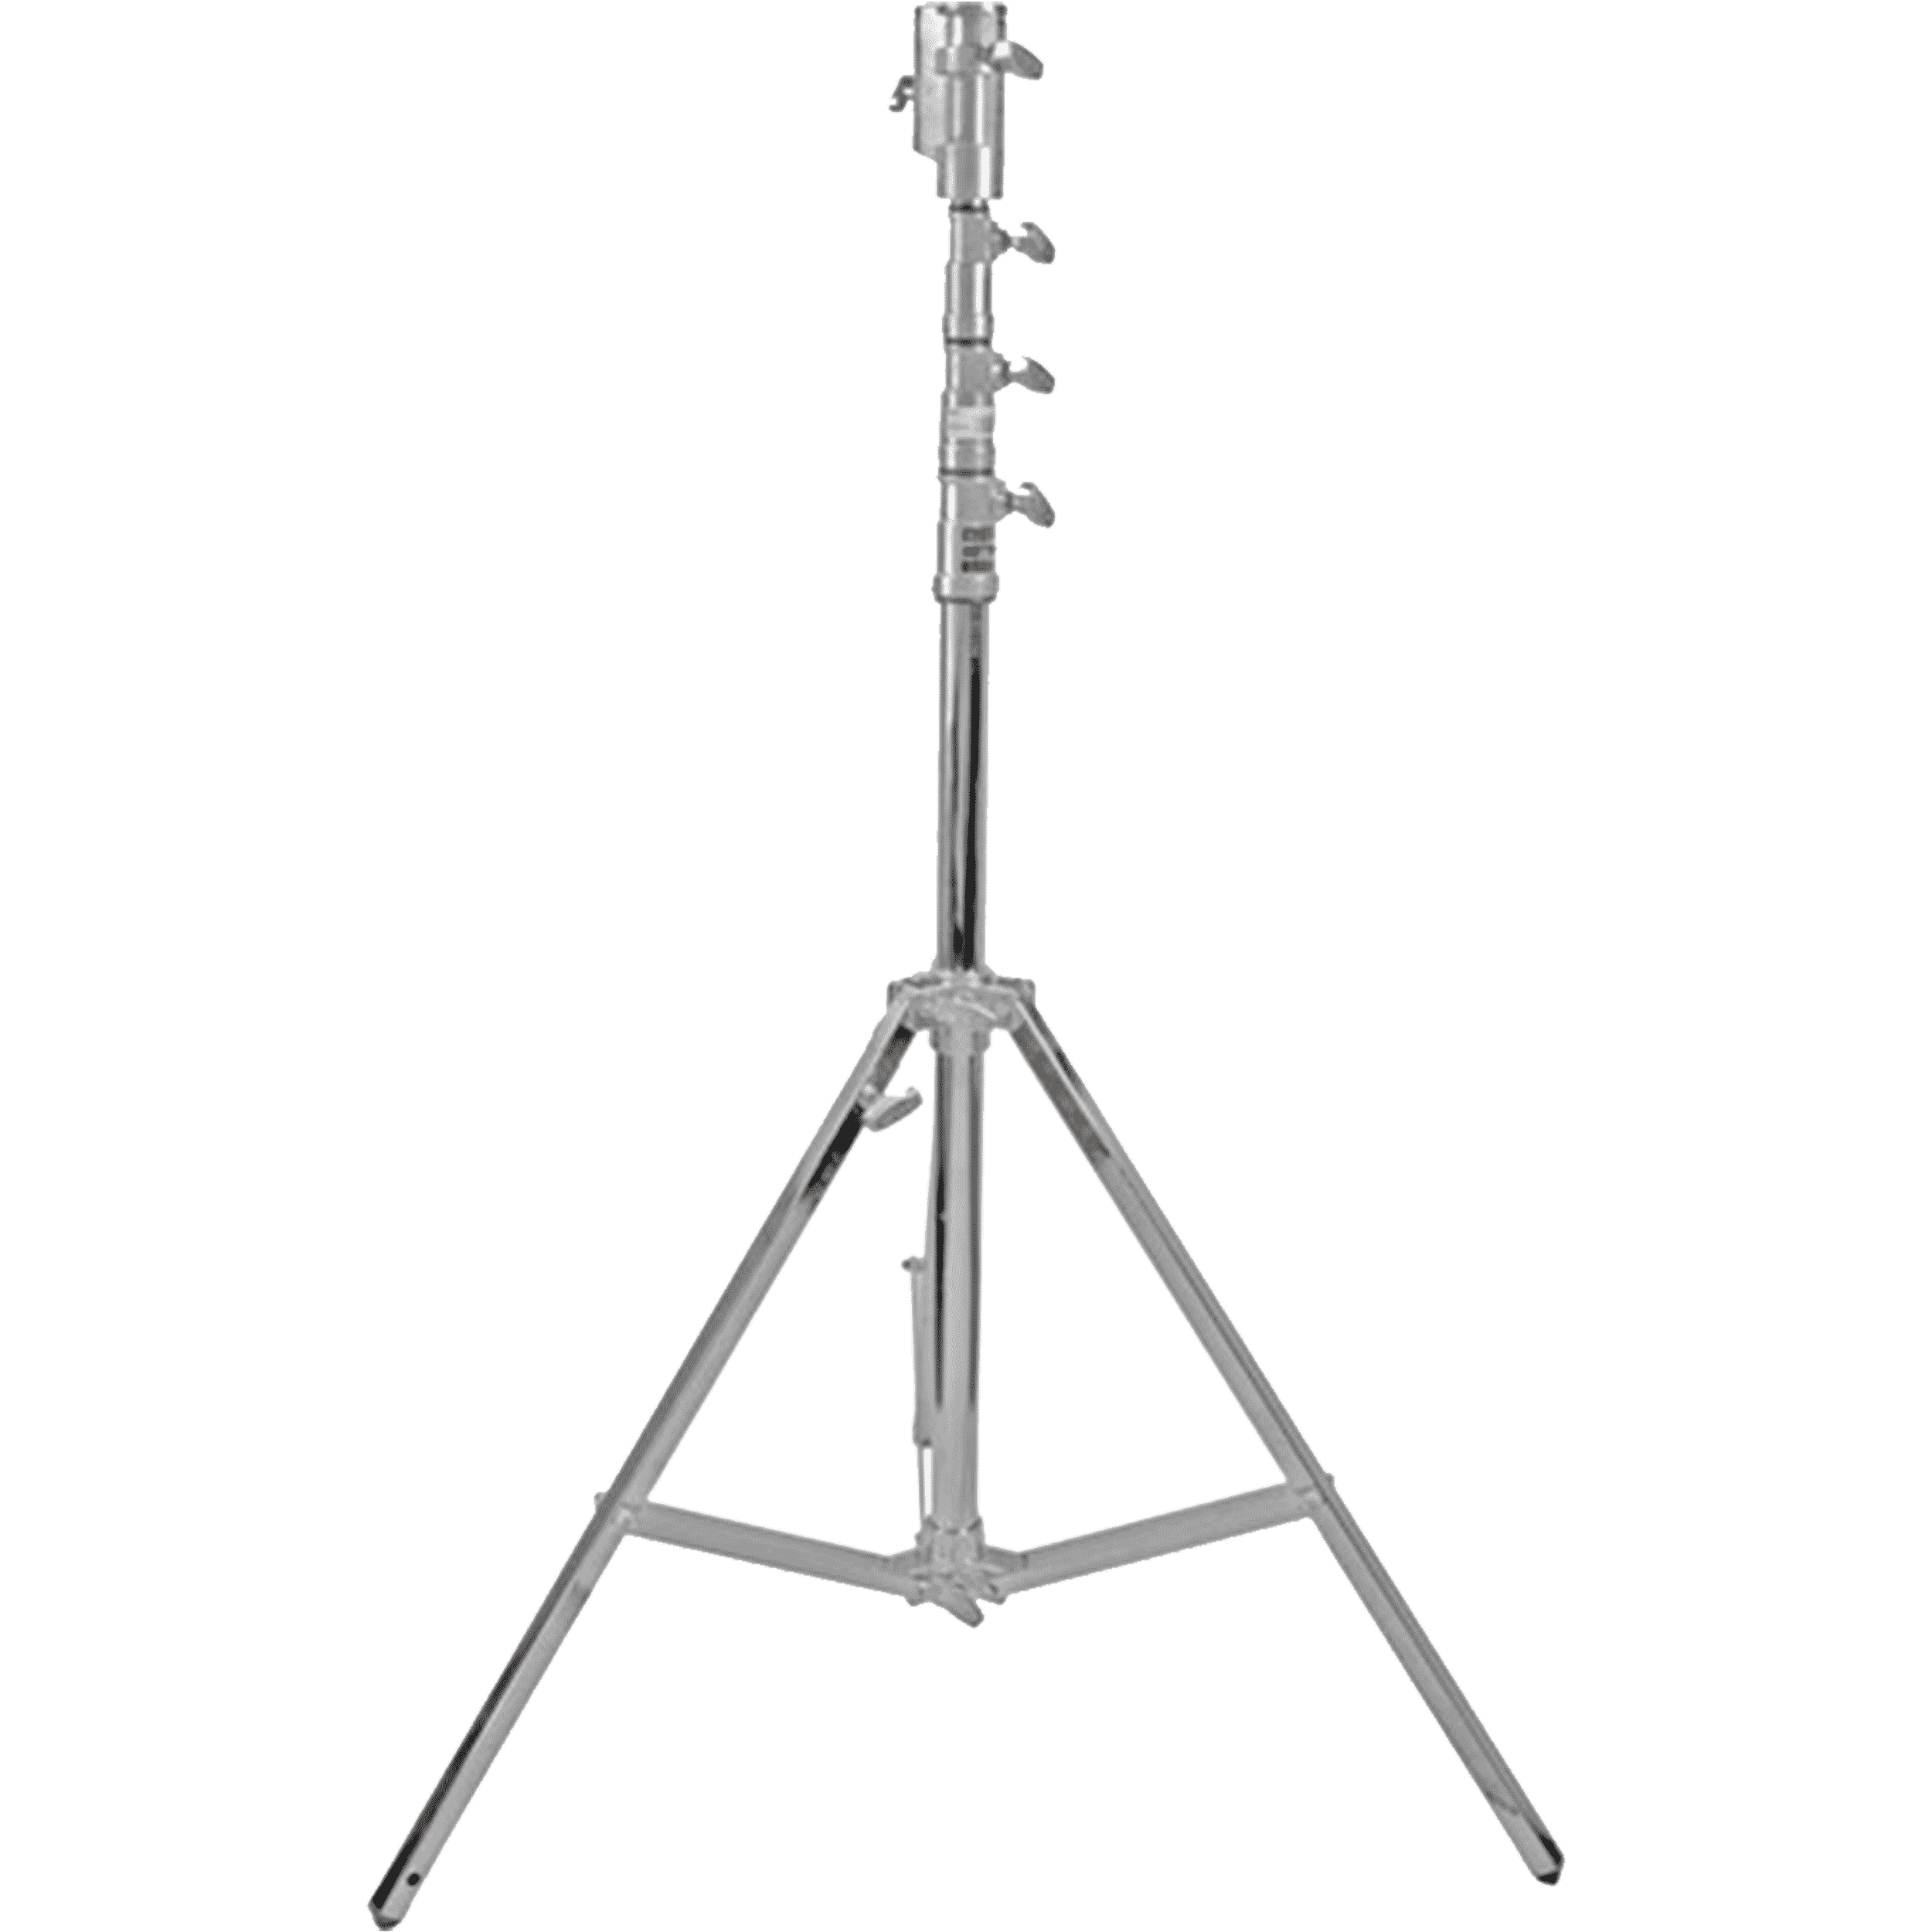 manfrotto_triple_riser_stand.png